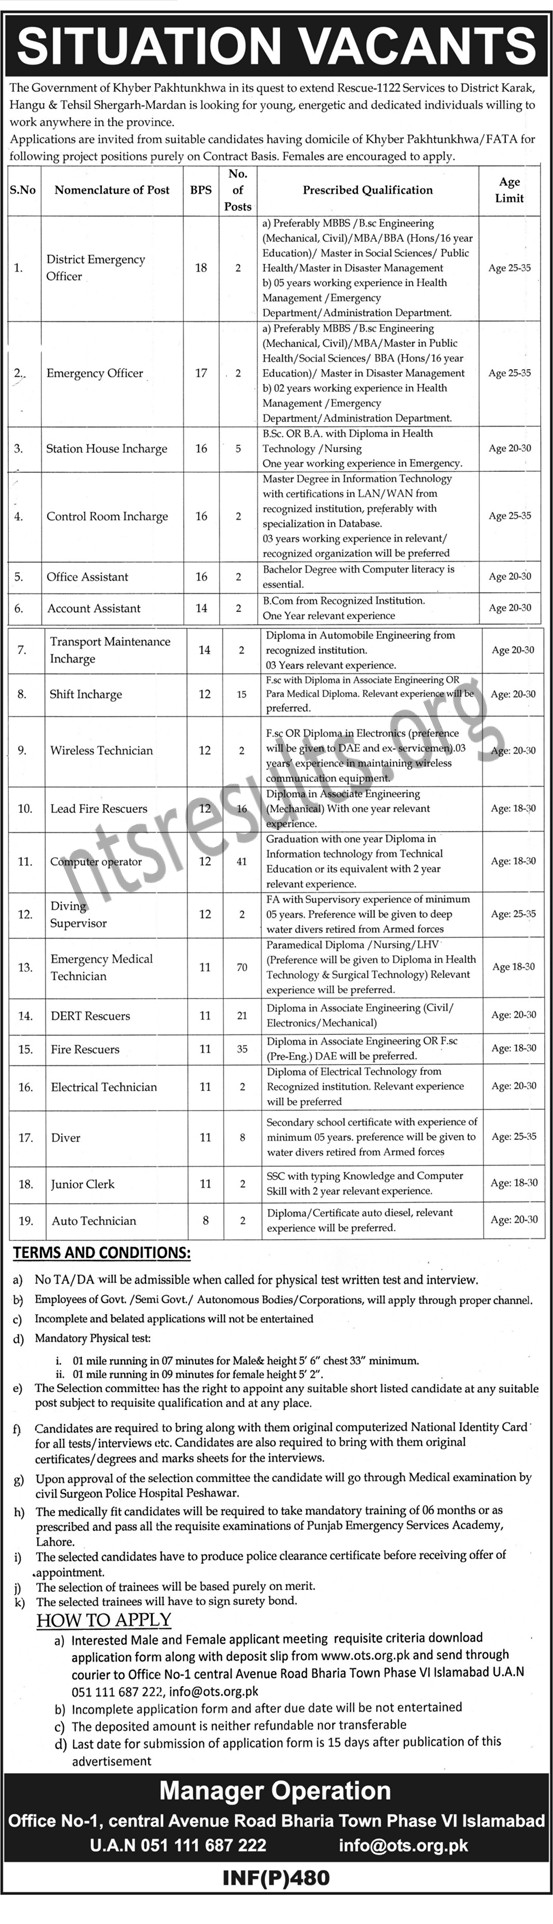 KPK Rescue 1122 Jobs Via OTS